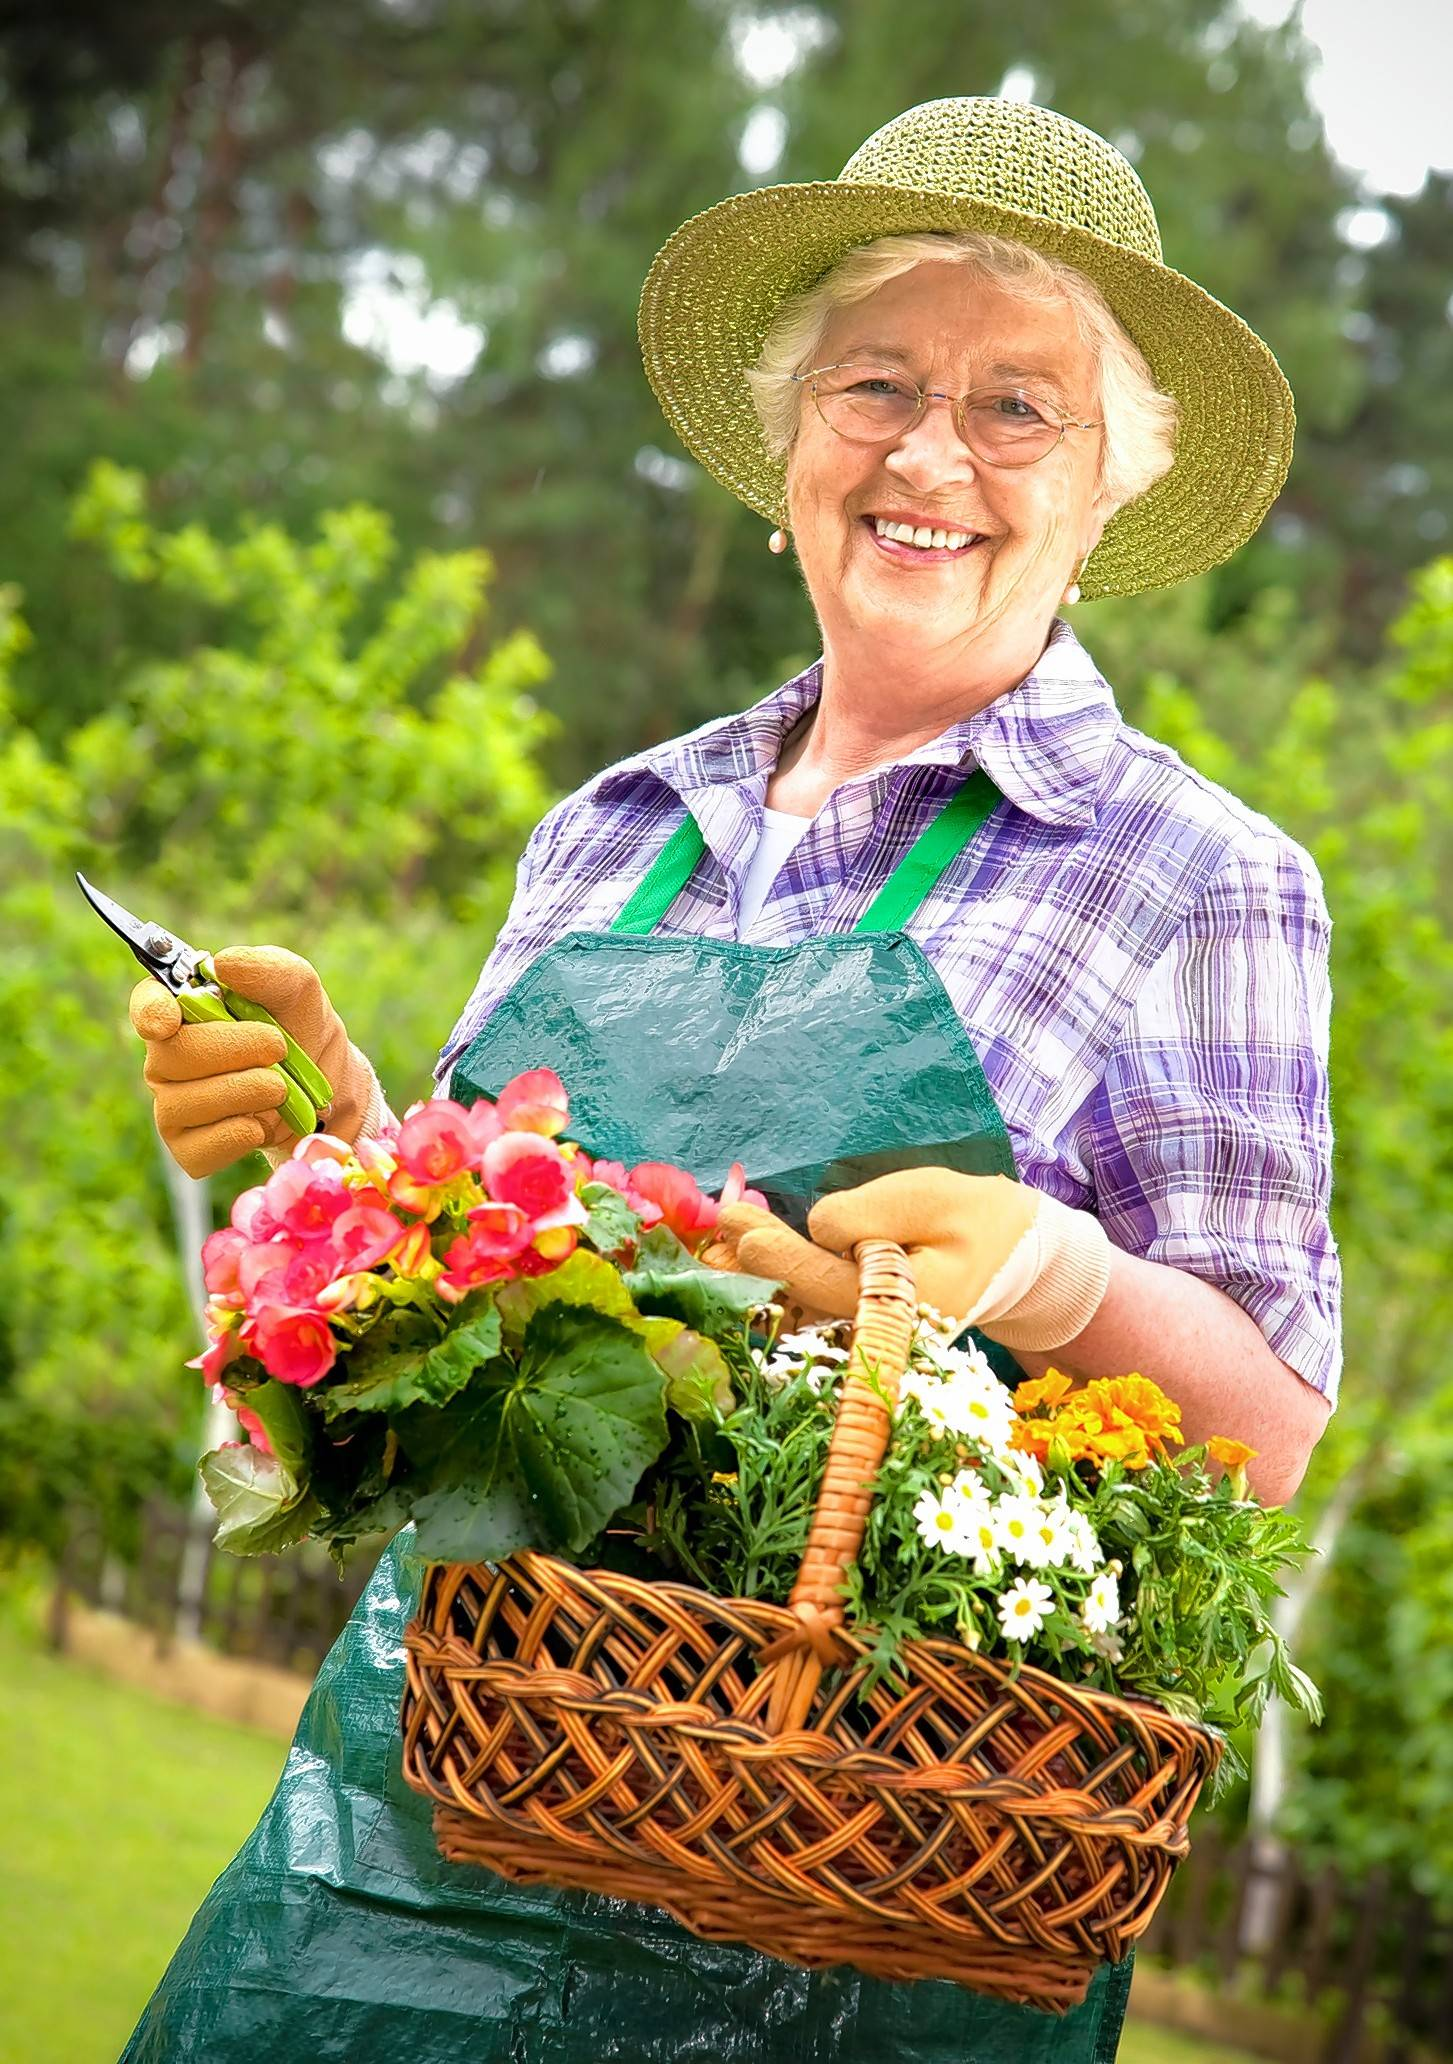 Simple things, like working in a garden, can give an older adult a sense of purpose.